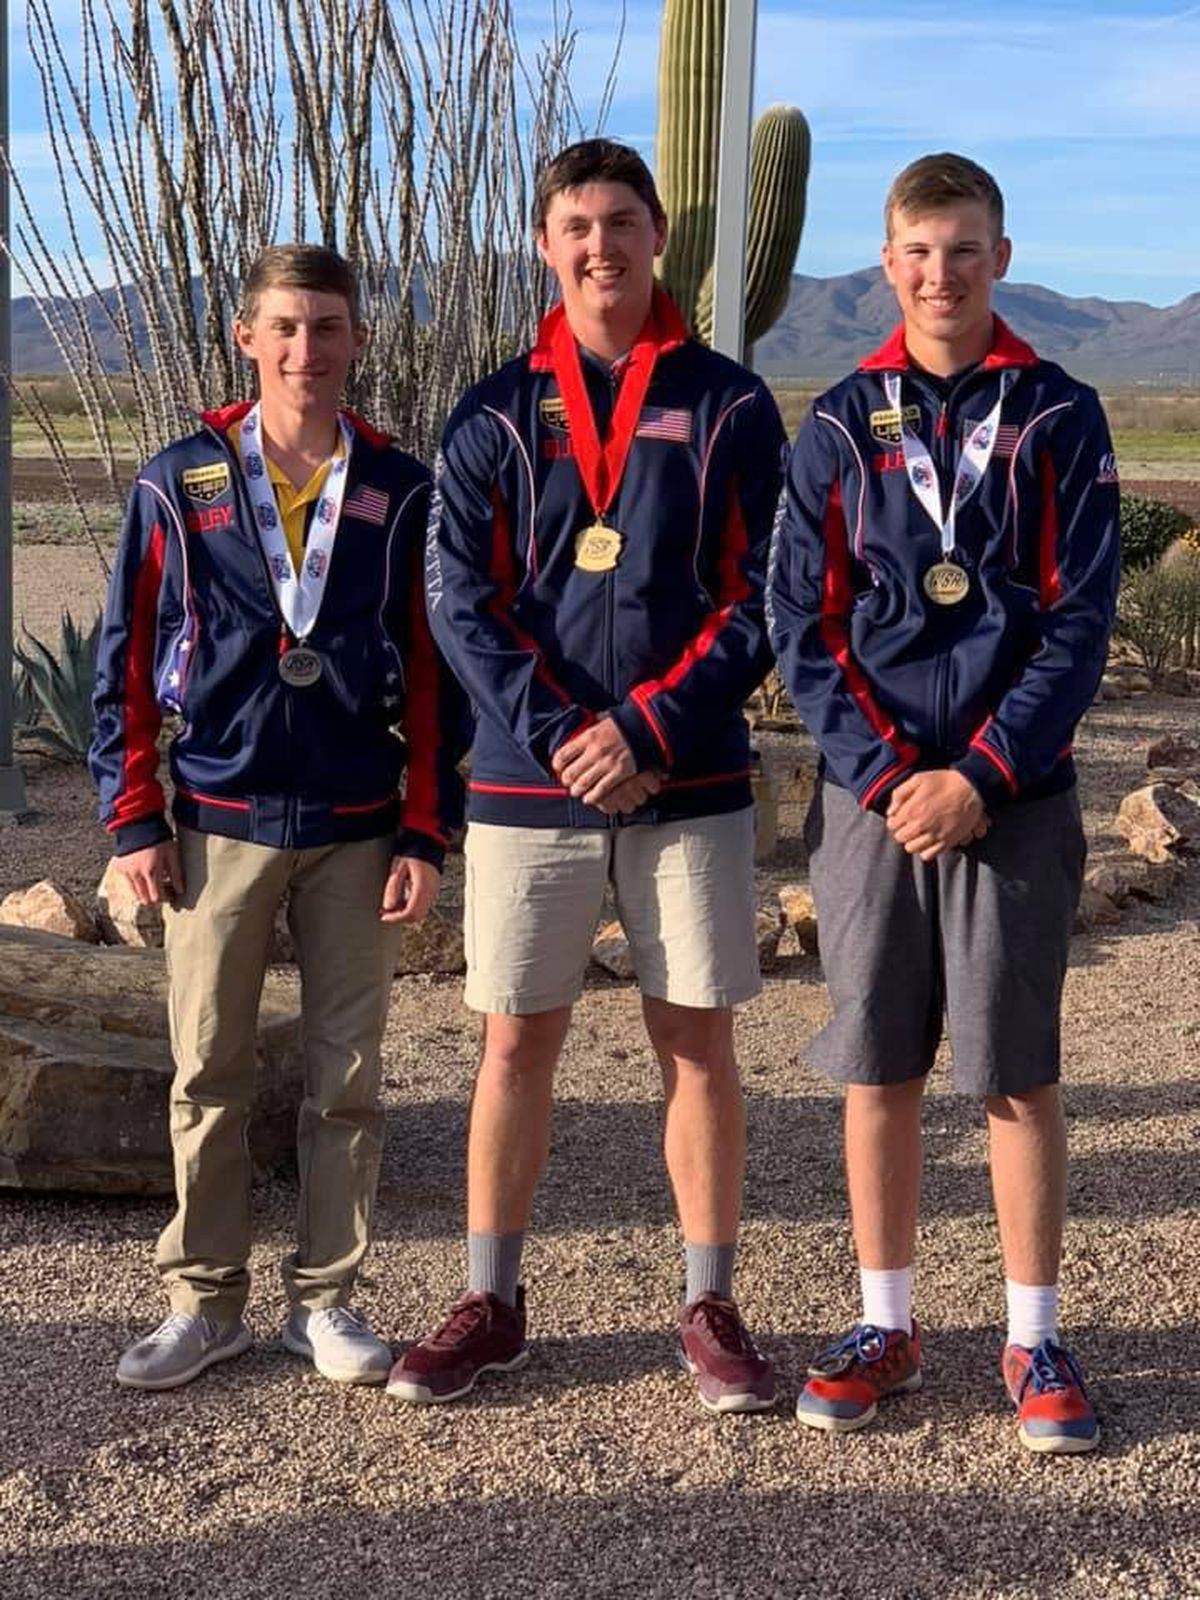 Gold-medal winner Steven Brown, center, and bronze-medal winner Grayson Davey, right, pose after earning medals at a USA Shooting competition in Tucson, Arizona. On the left is silver medalist Roe Reynolds of Quitman, Arkansas. (Photo by John Thompson)